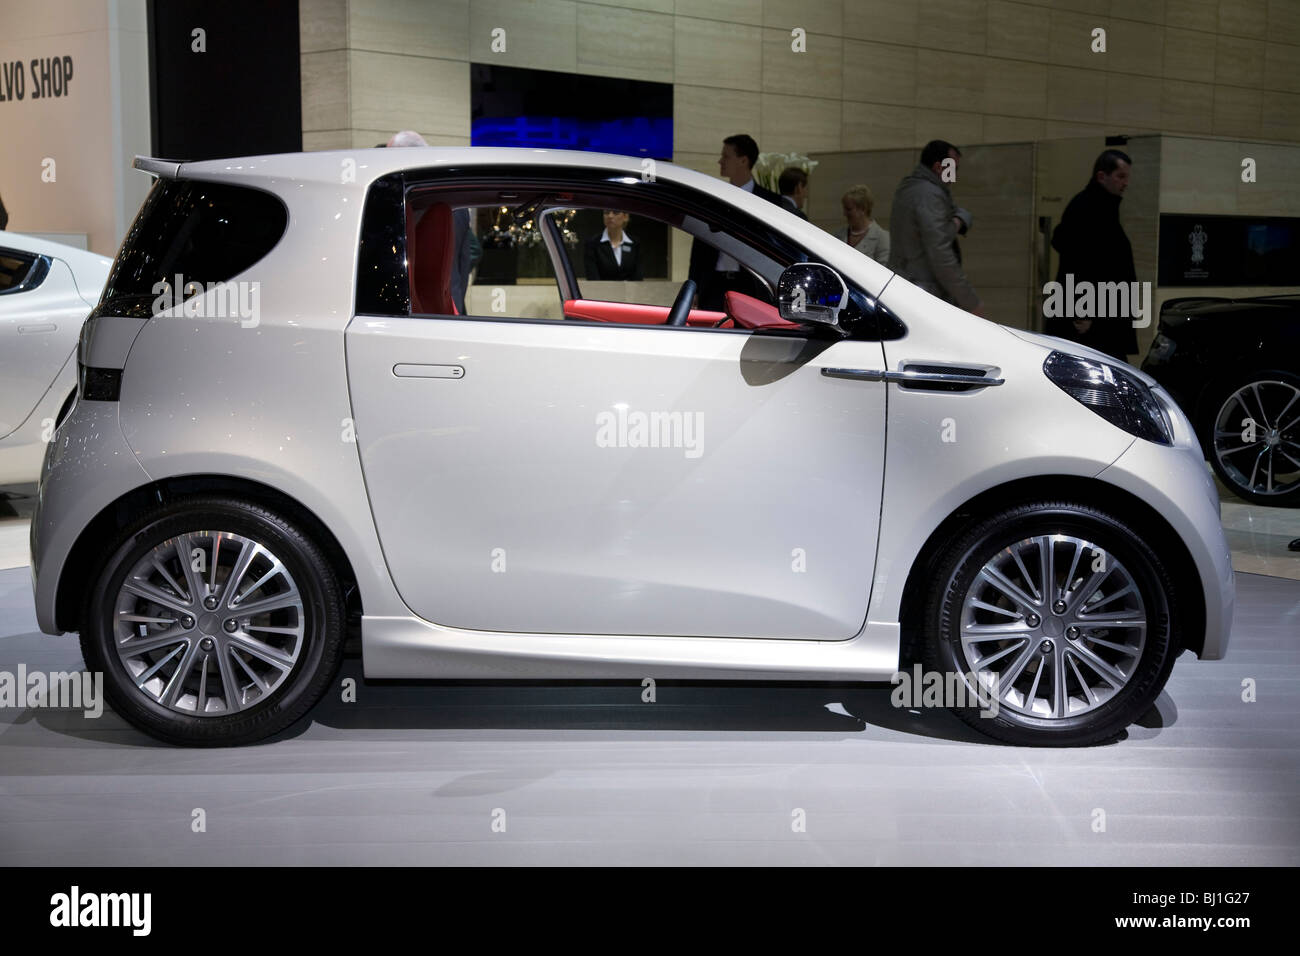 Aston Martin Cygnet Toyota iQ-based city car at a motor show - Stock Image